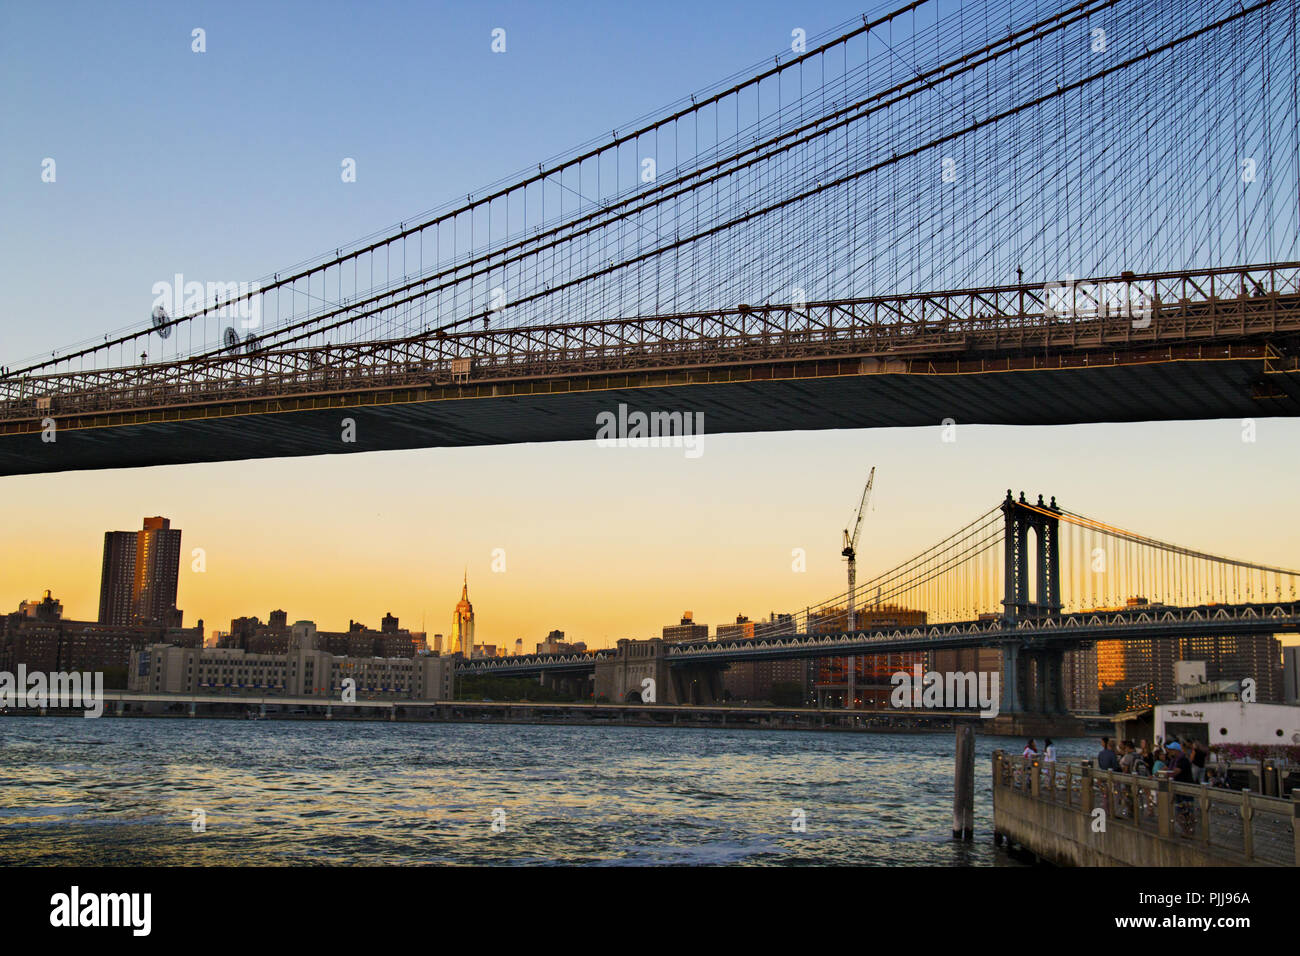 Empire State Building Construction Stock Photos & Empire ...